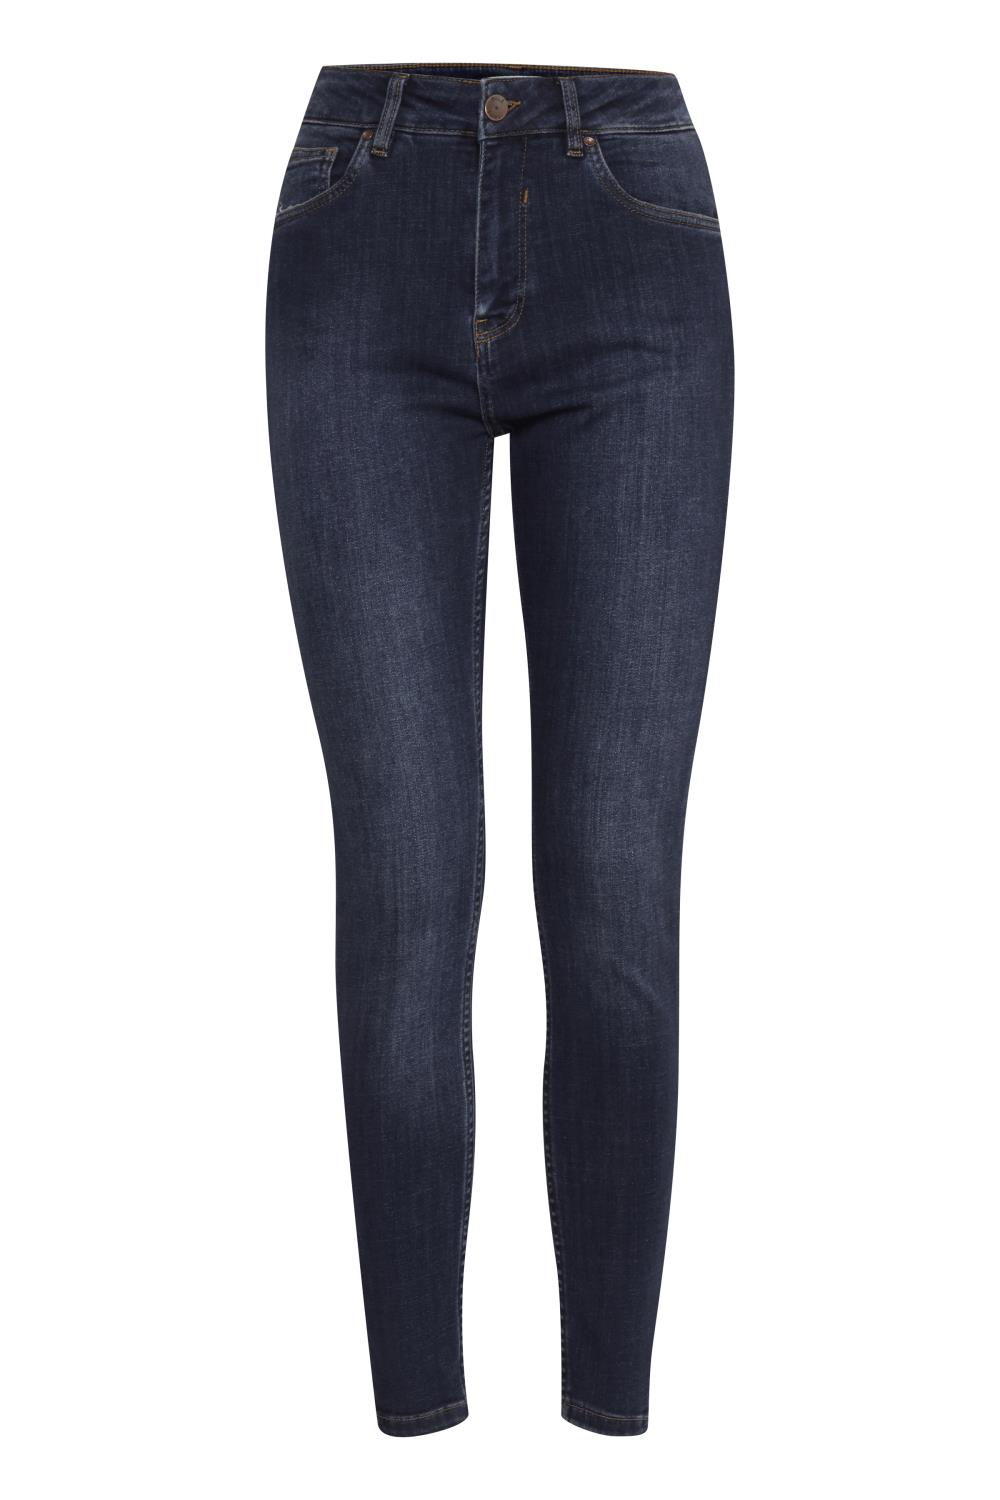 Pulz Emma Jeans, dark blue denim